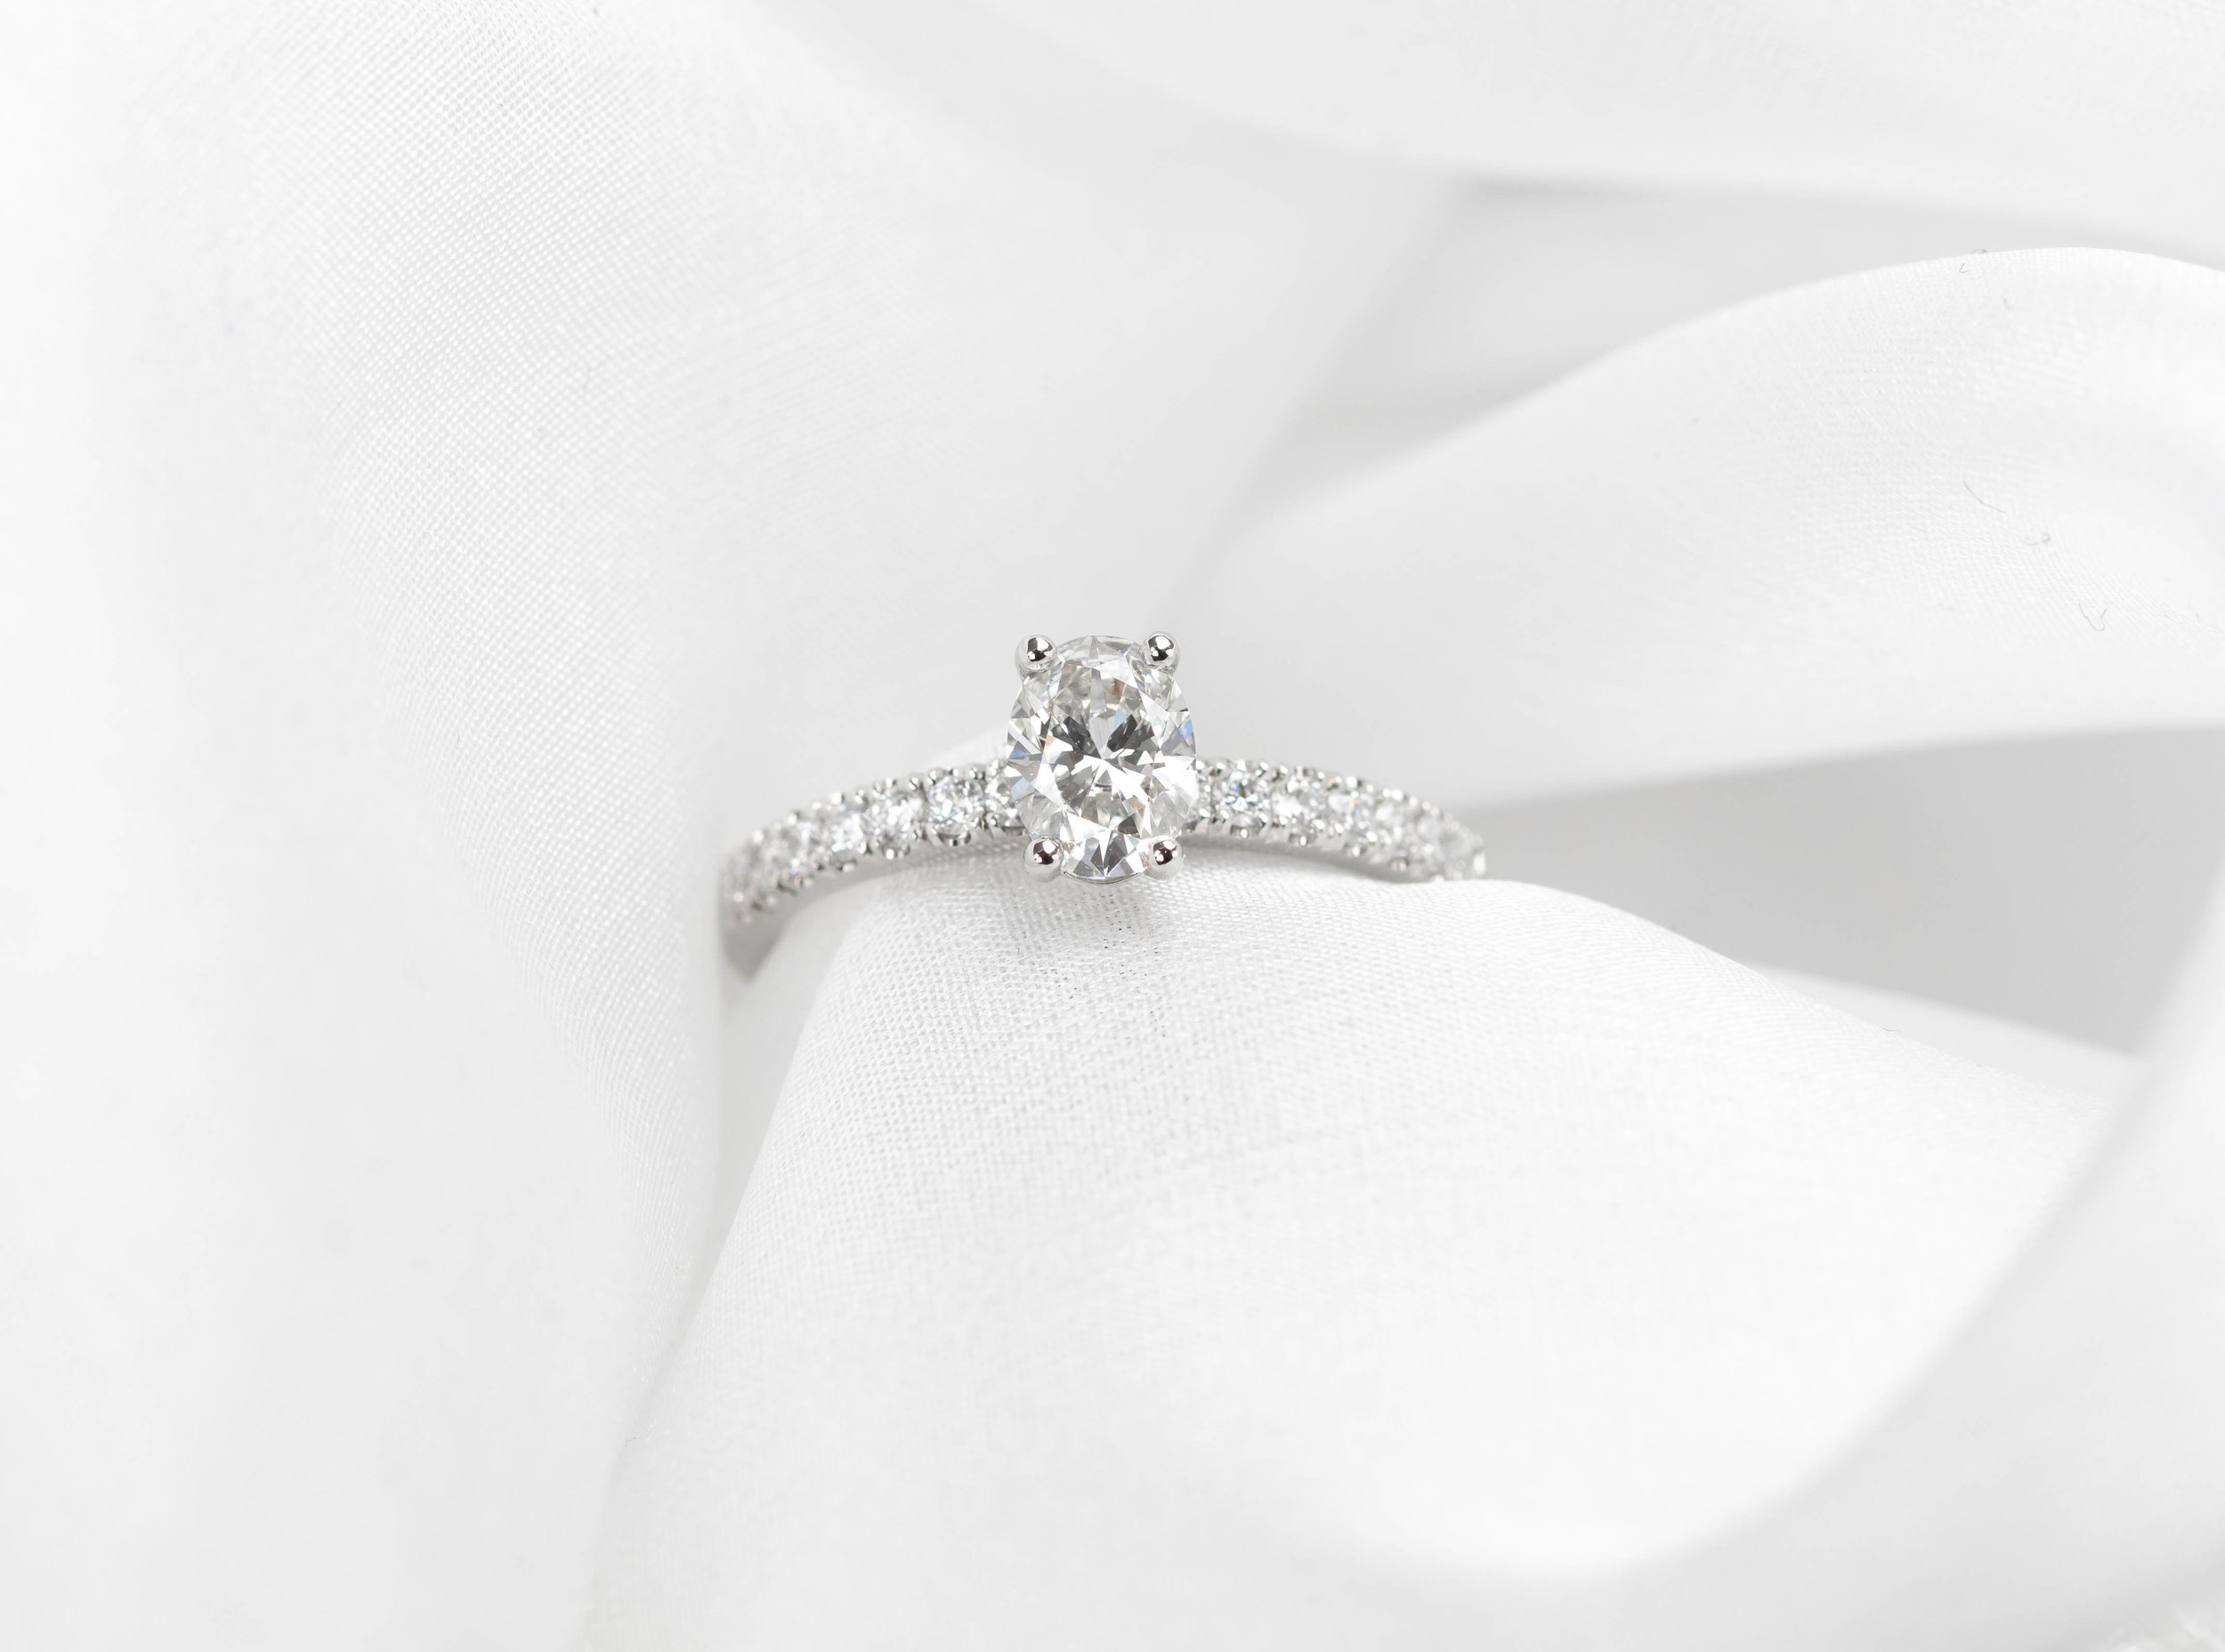 Copy of Platinum mounted oval diamond set ring with diamond set shoulders. Made in Chichester, England.